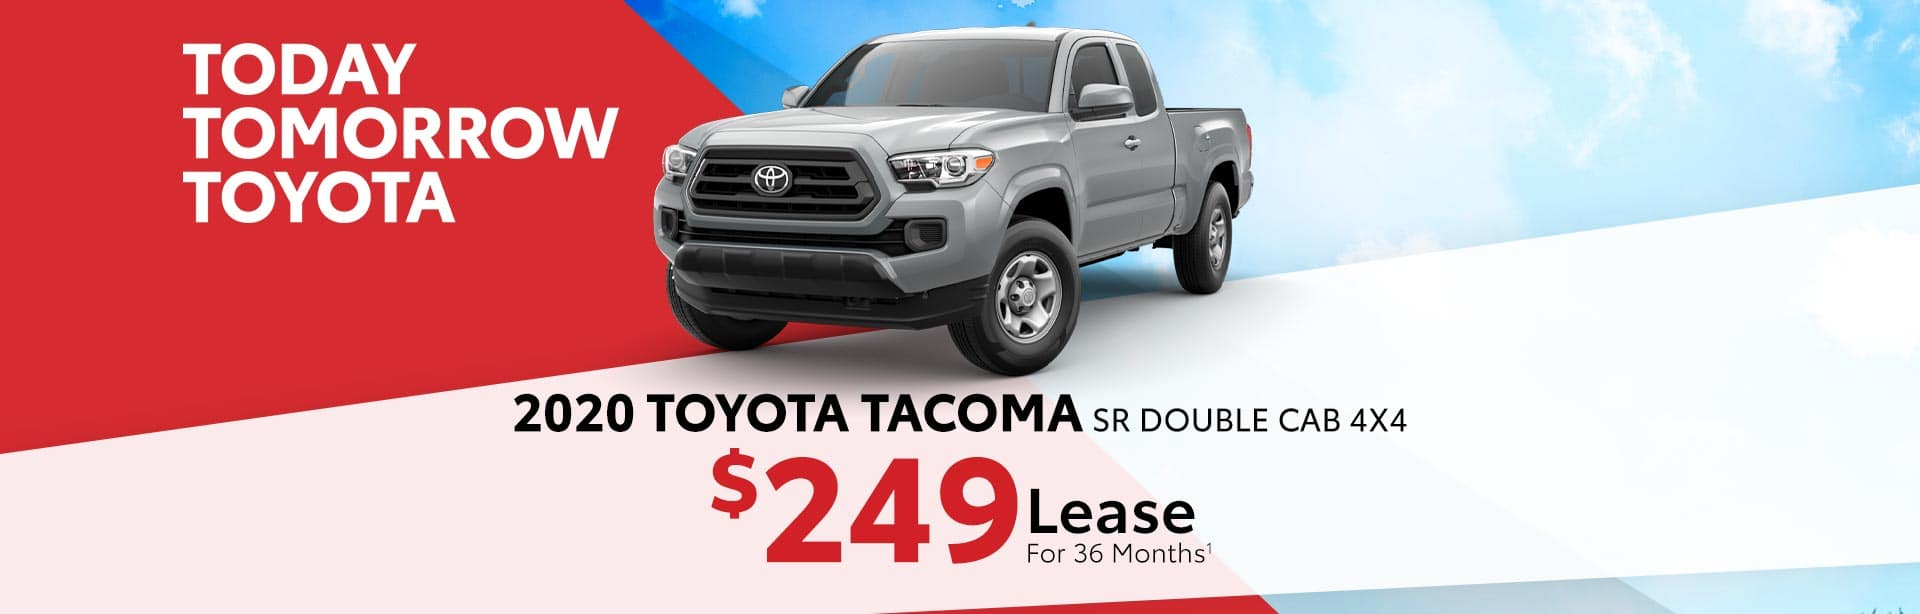 Lease a New Tacoma for $249 a month near Franklin, Indiana